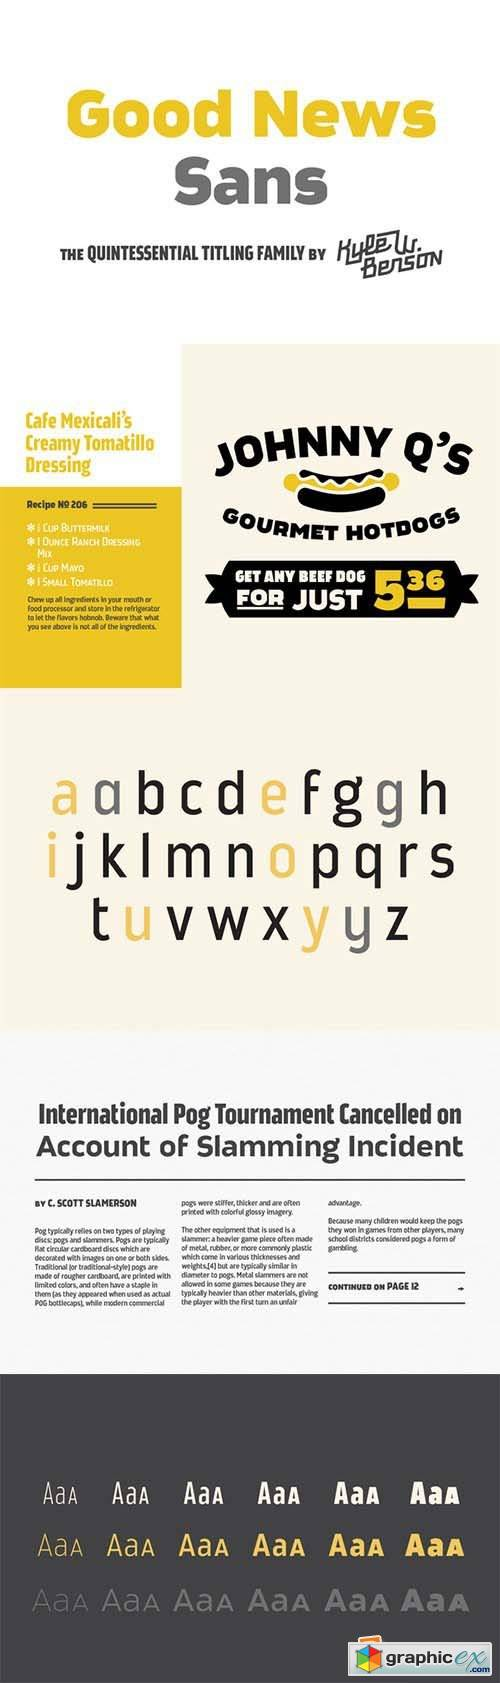 Good News Sans Font Family - 18 Fonts 32$